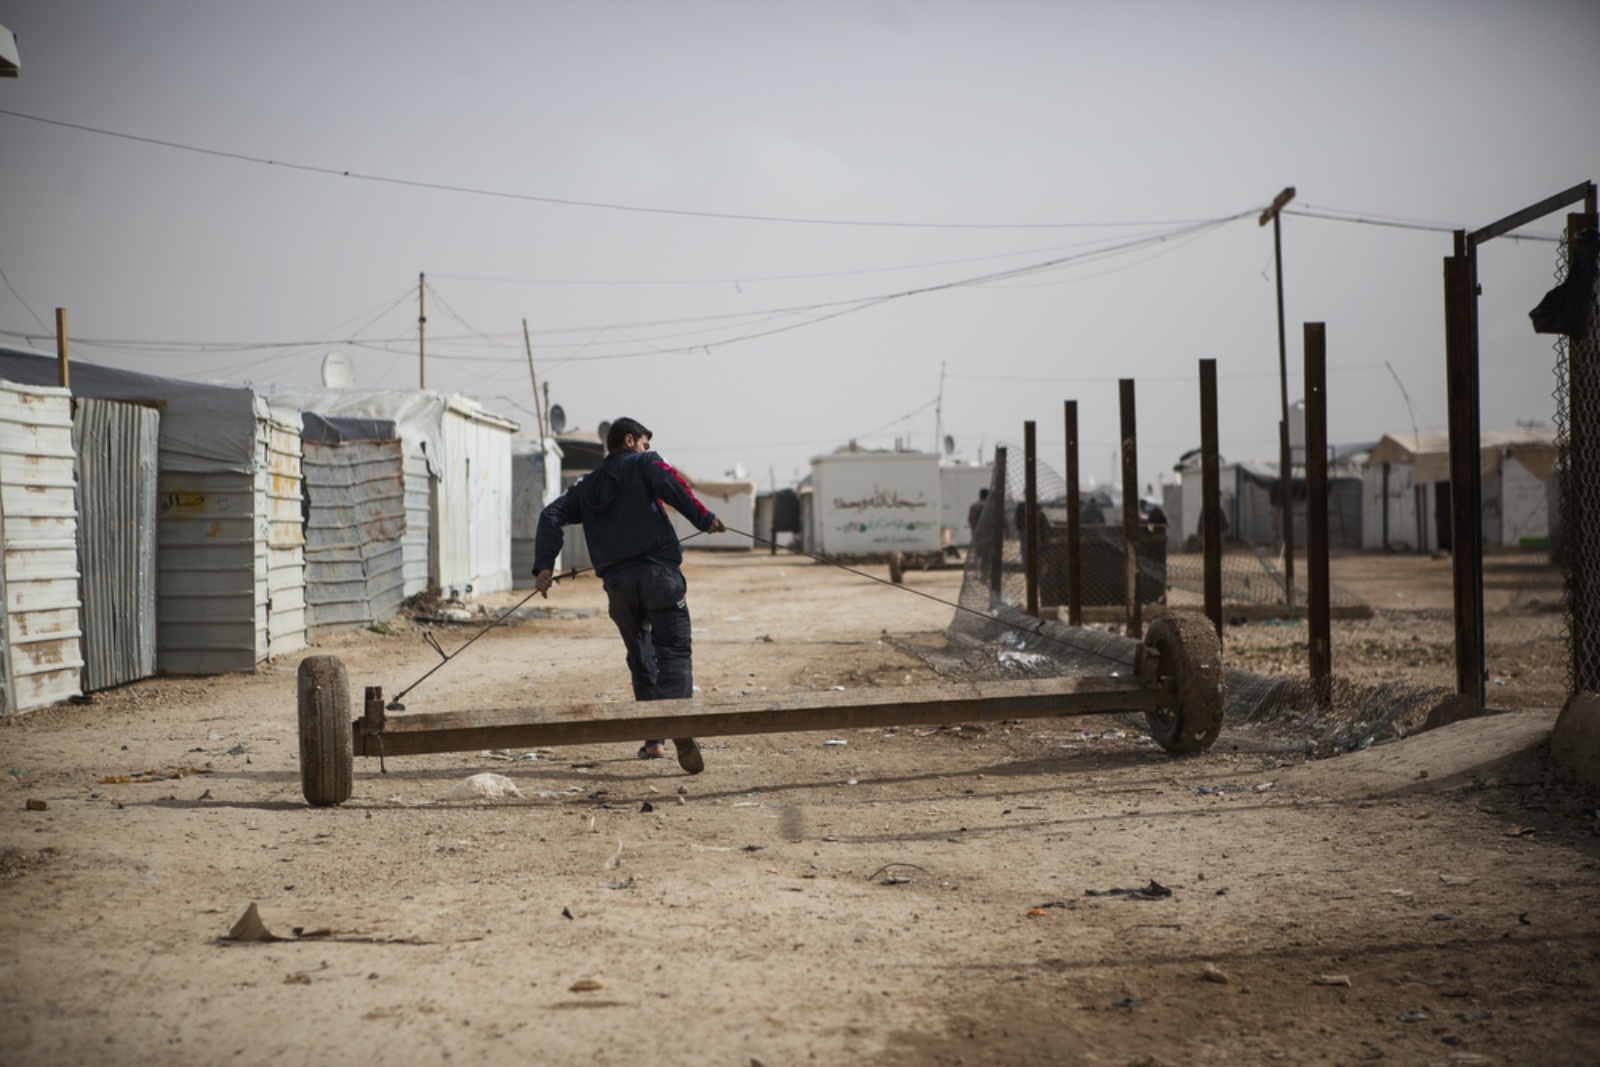 A Syrian refugee pulls a trailer that is used to haul large objects, including a whole caravan, down a street in Zaatari refugee camp on January 18, 2016. (Christopher Lee/GroundTruth)